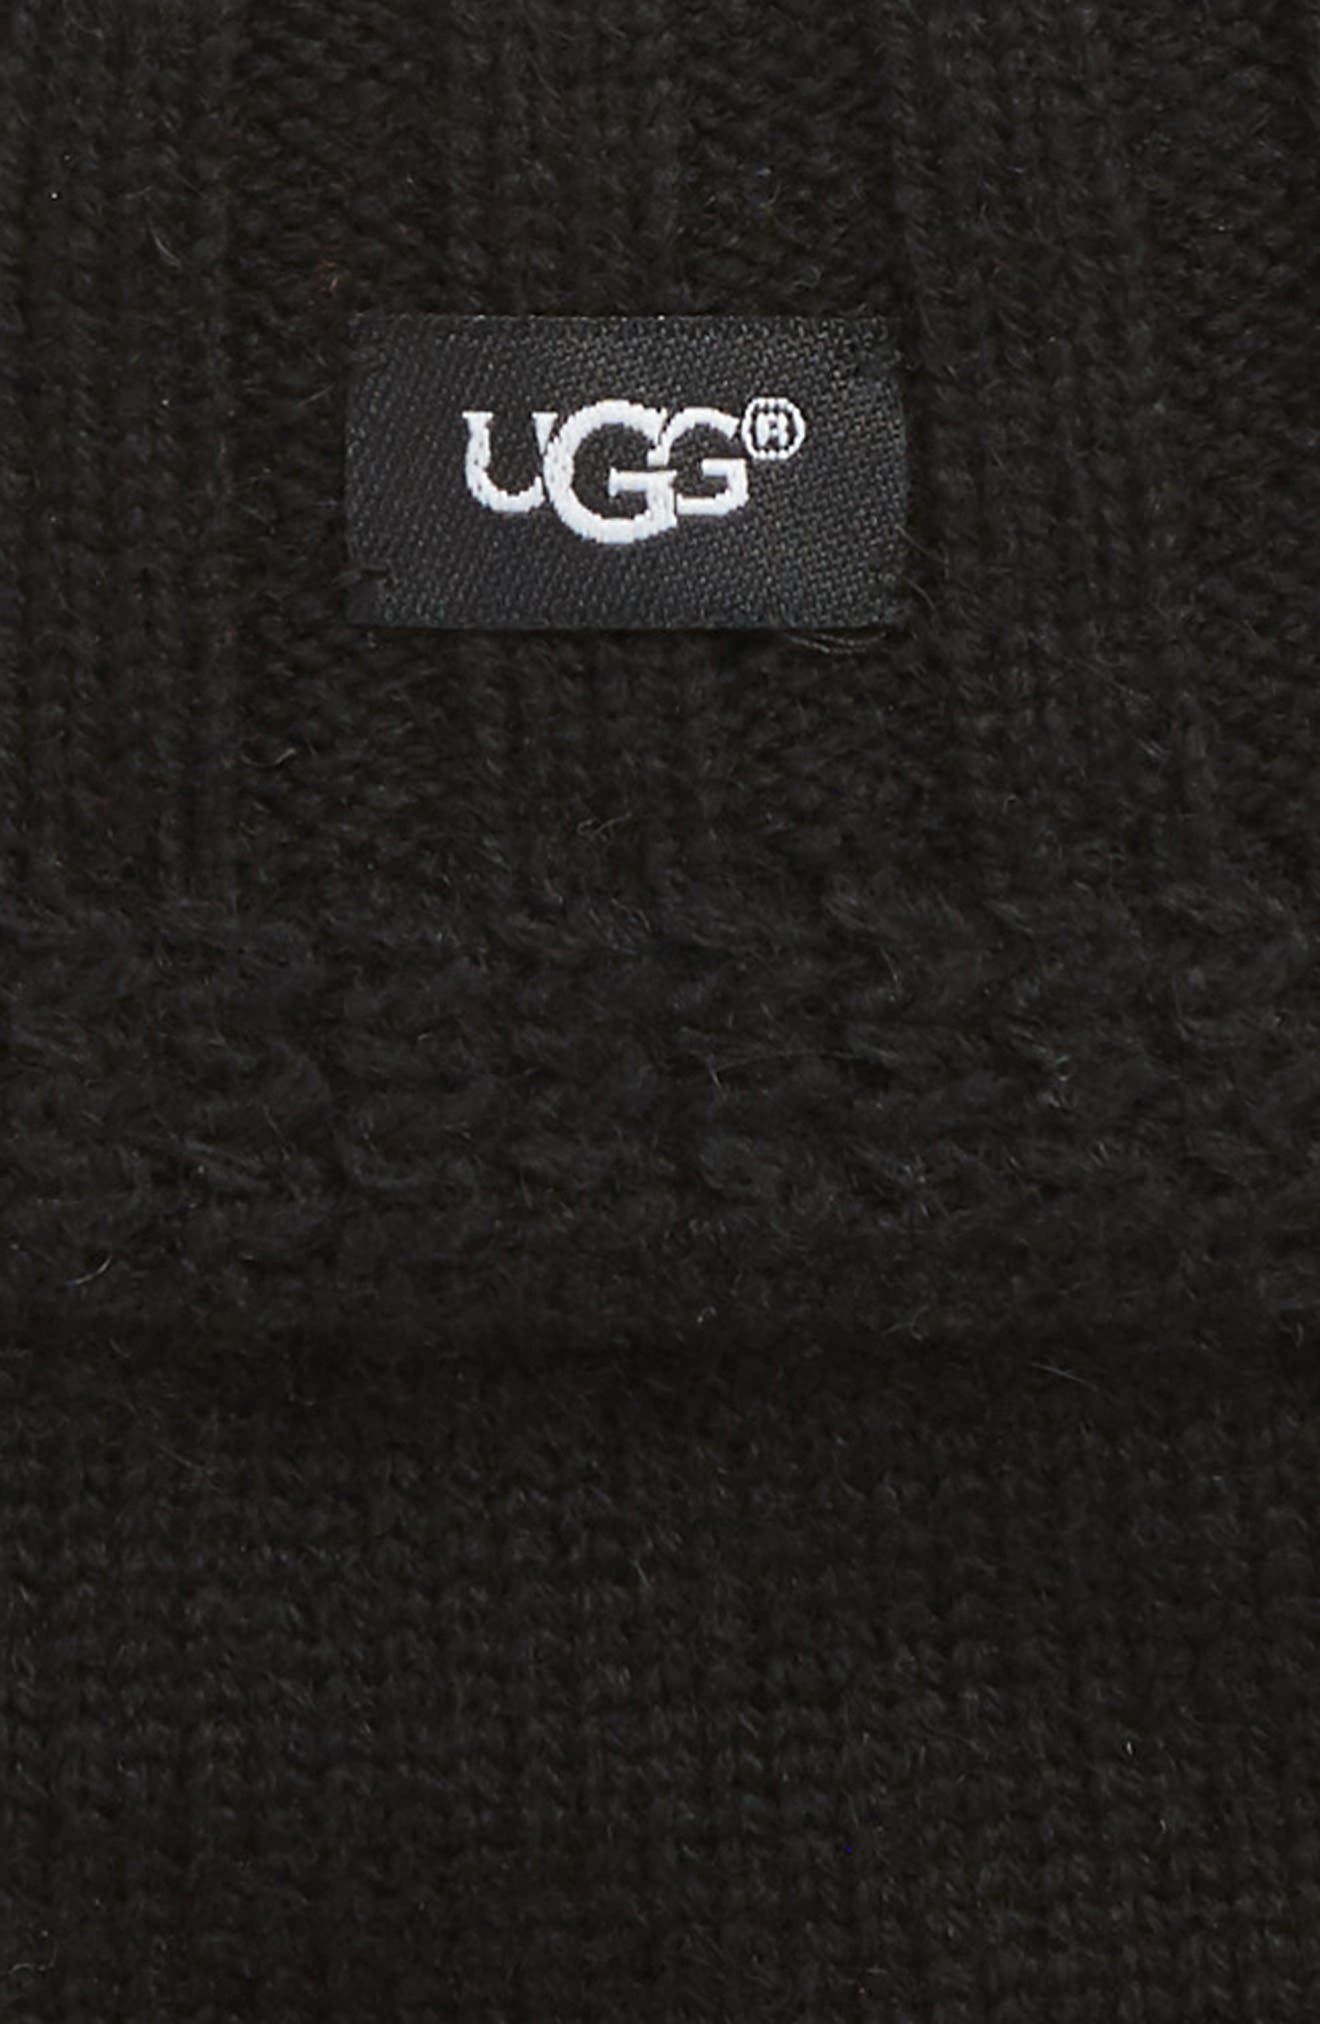 UGG<sup>®</sup> Textured Fingerless Knit Gloves,                             Alternate thumbnail 2, color,                             001